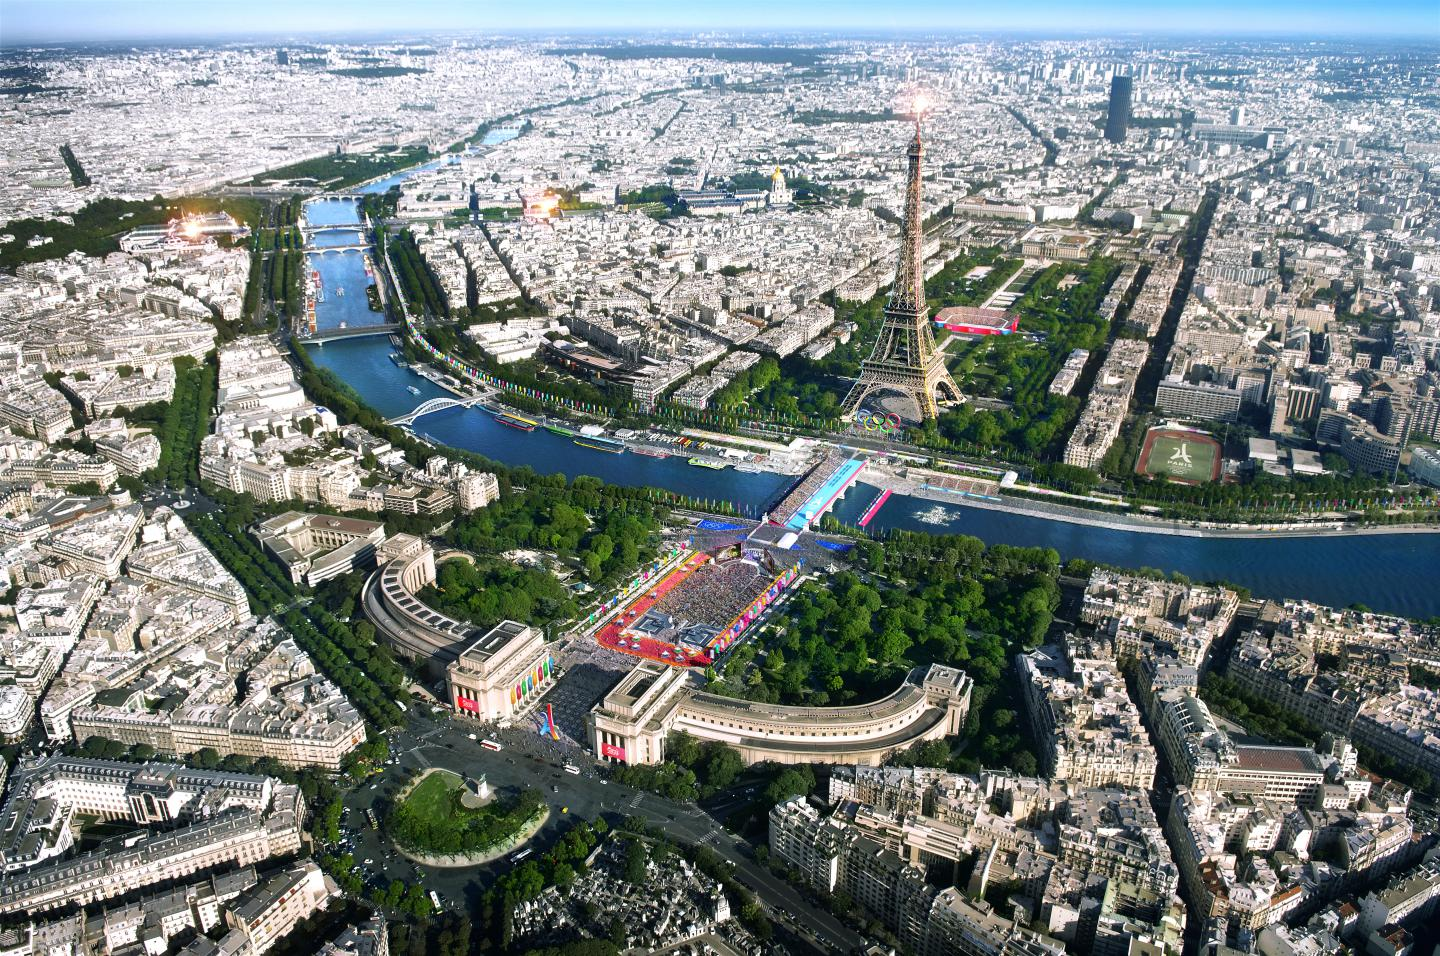 Paris 2024 - Parc olympique